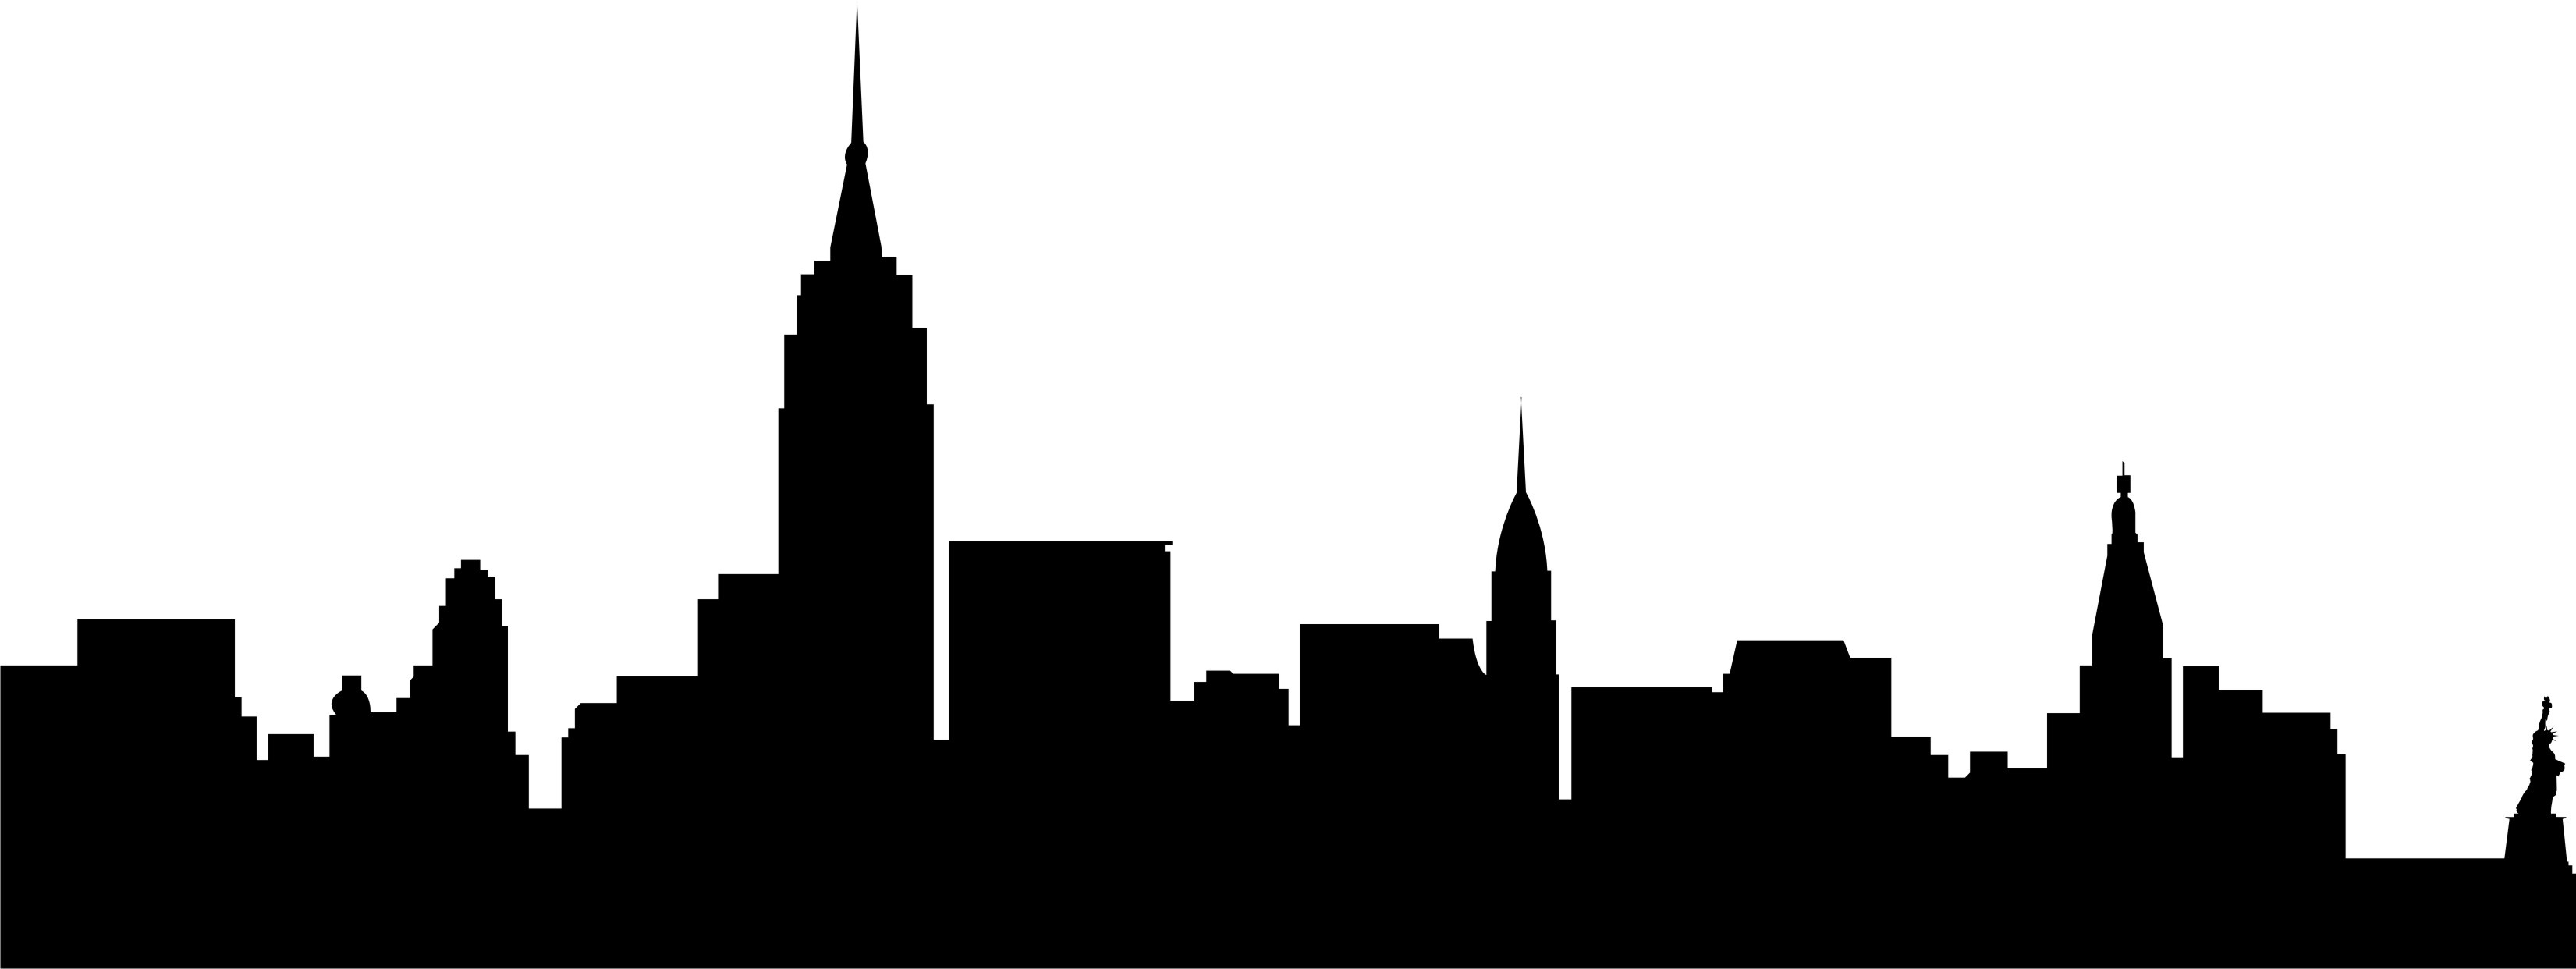 Skyline Buildings Clipart 24578 Hd Wallp-Skyline Buildings Clipart 24578 Hd Wallpapers In Skyline-2